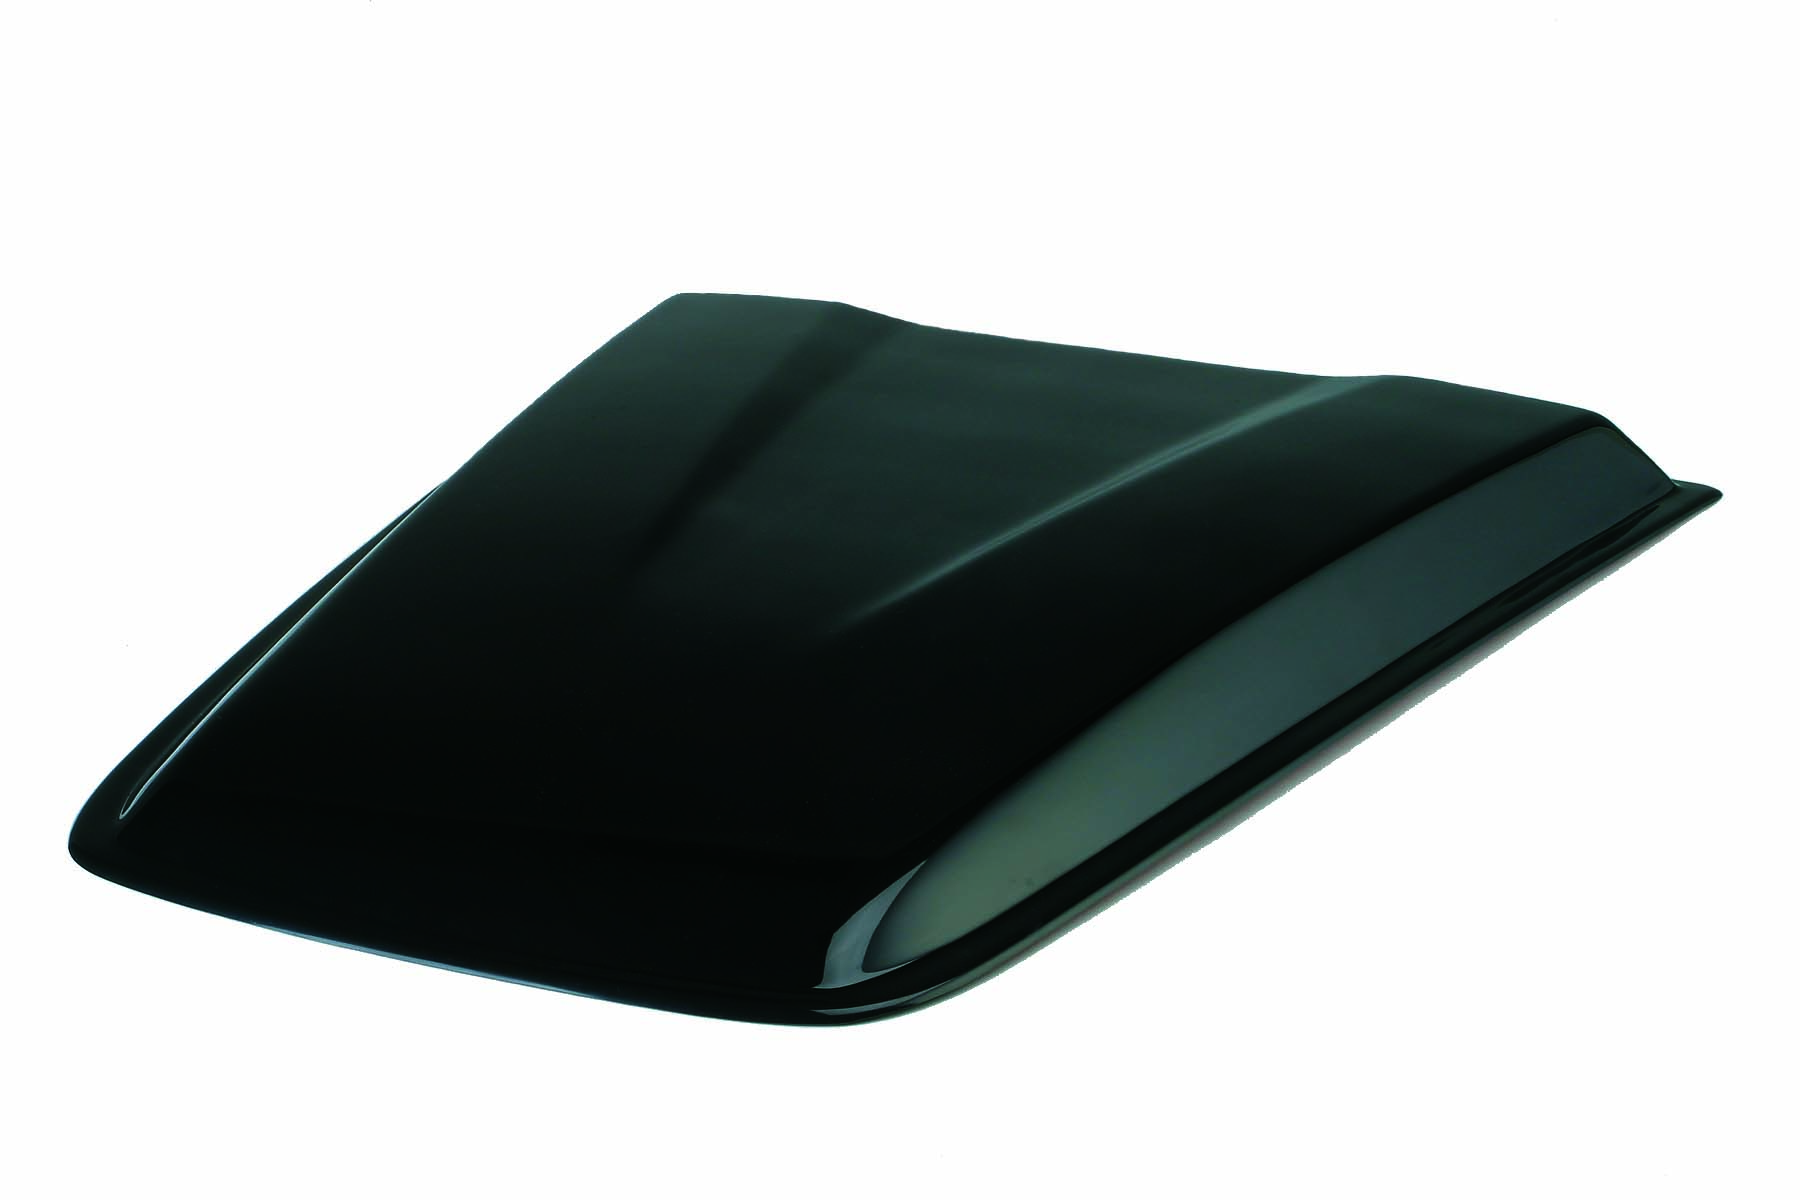 Chevrolet Silverado 1999-2010  Truck Cowl Induction Hood Scoop